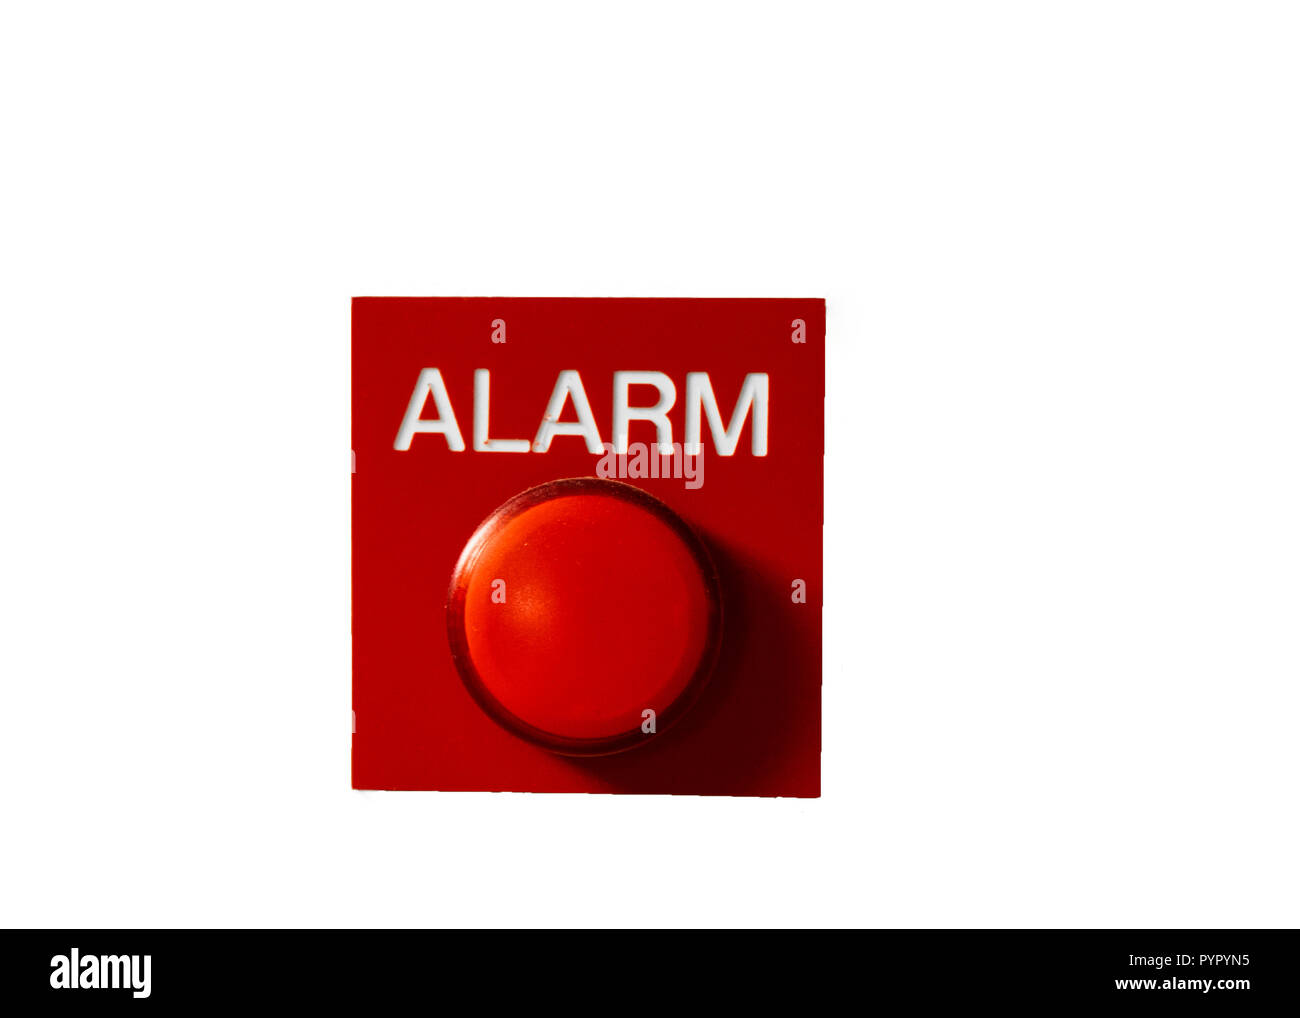 Red Alarm button signal isolated on white. Concept of any alarm situation - fire, bankrupt, robbery etc. Stock Photo